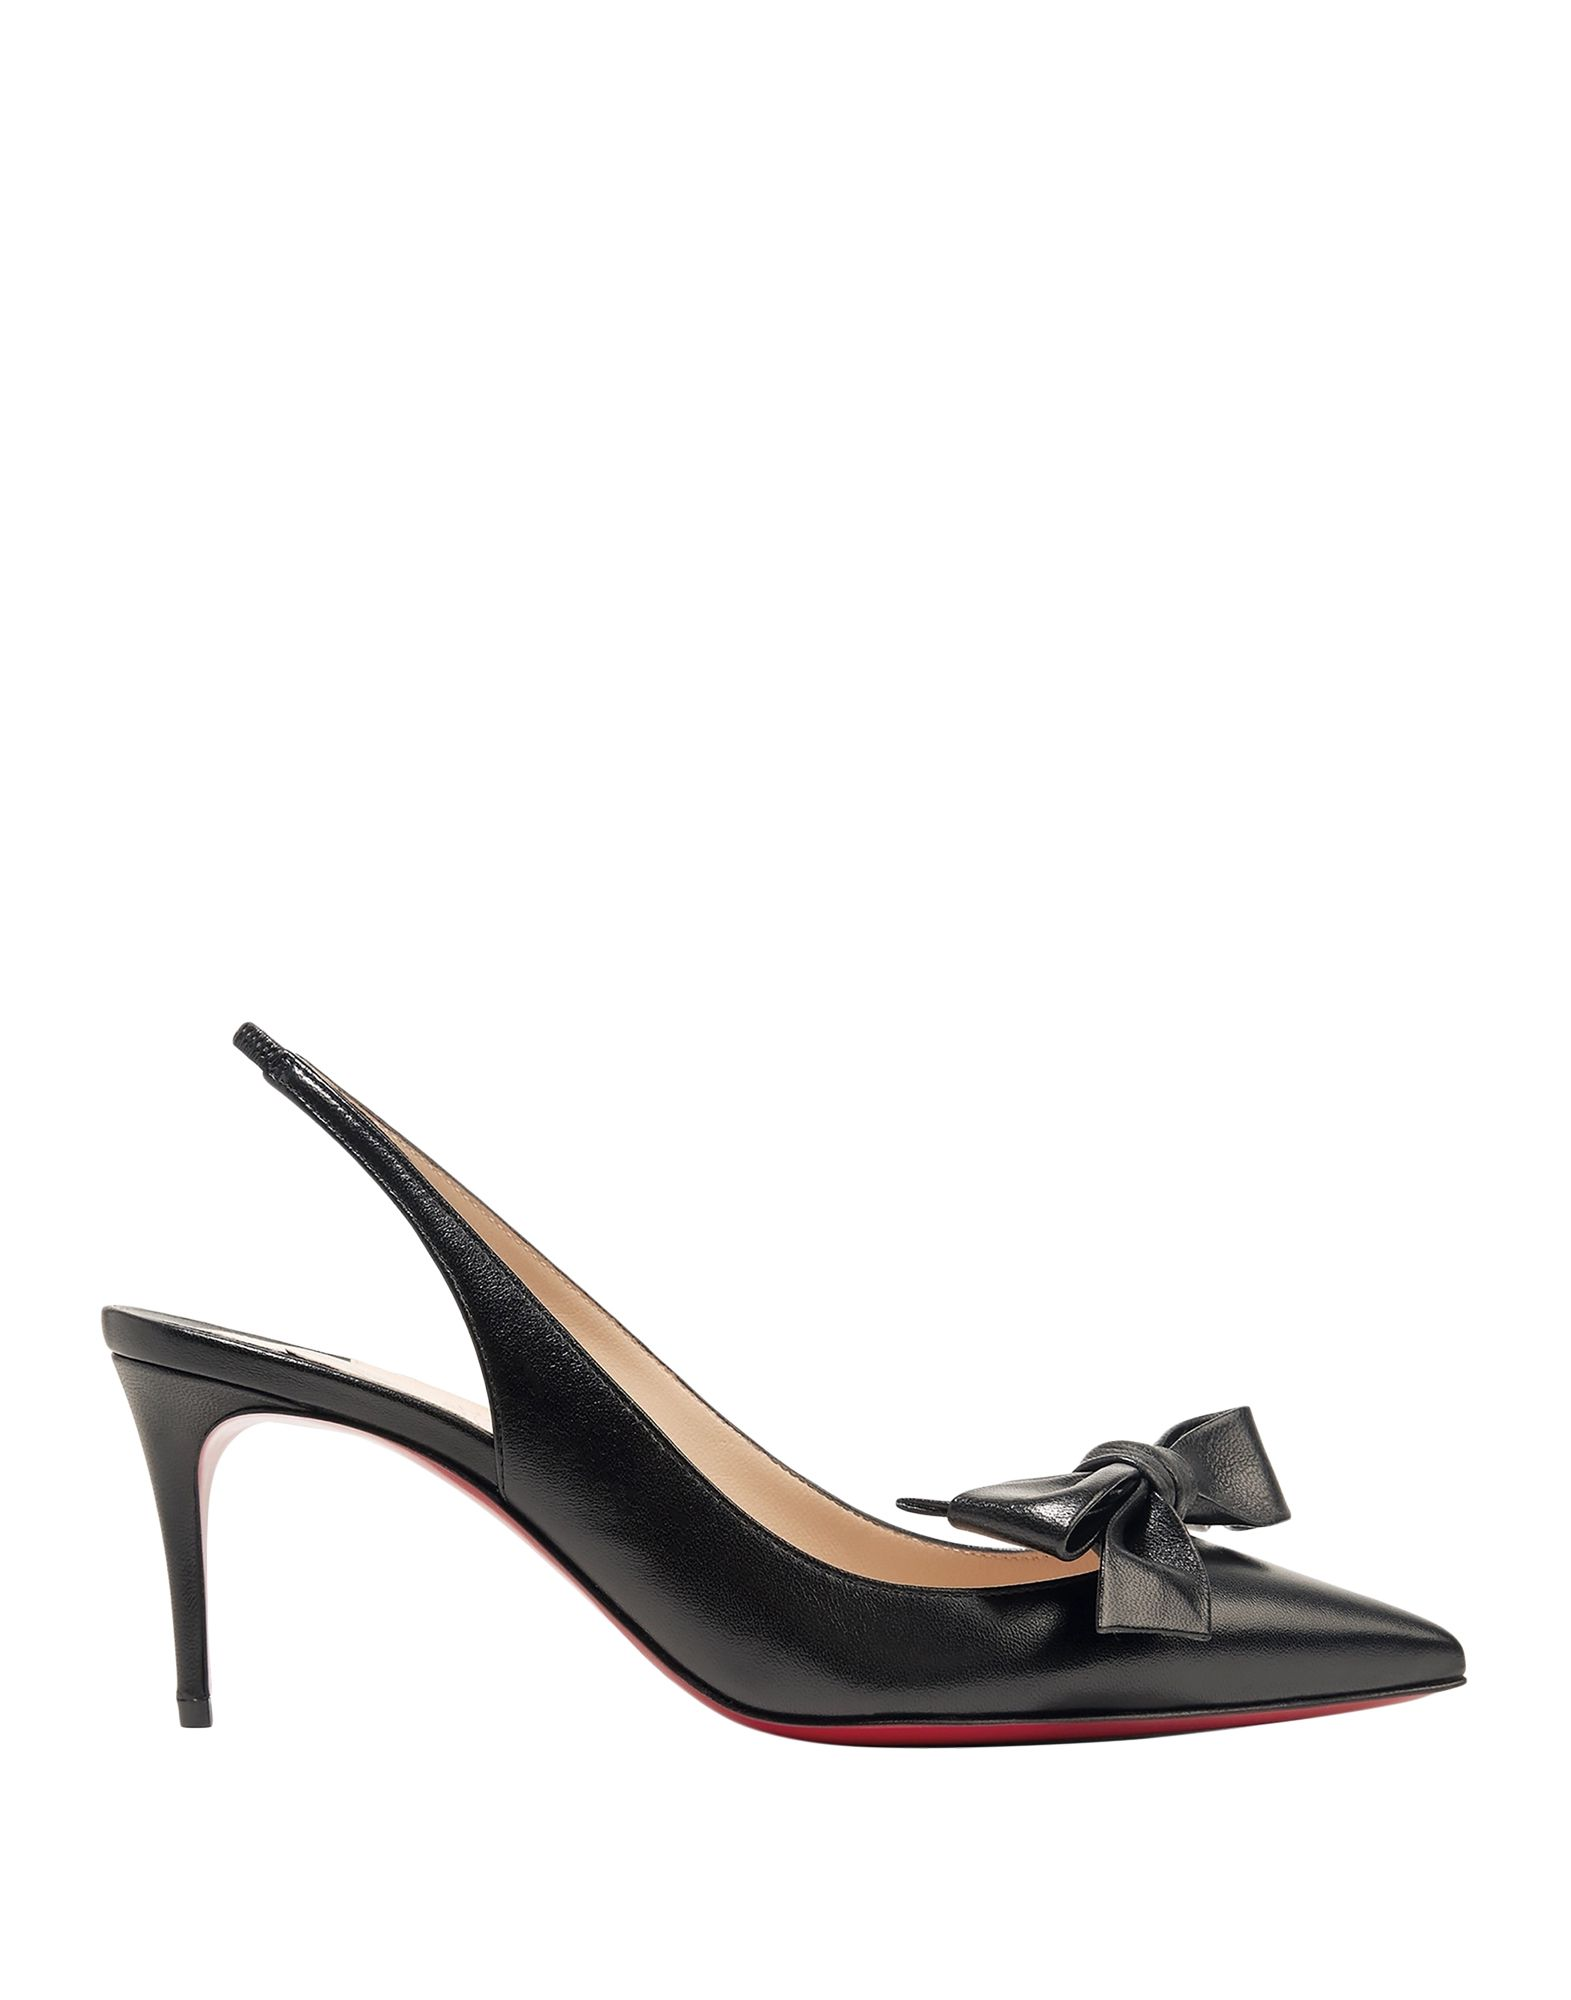 CHRISTIAN LOUBOUTIN Pumps. bow-detailed, solid color, narrow toeline, leather lining, spike heel, leather sole, contains non-textile parts of animal origin, small sized. Soft Leather